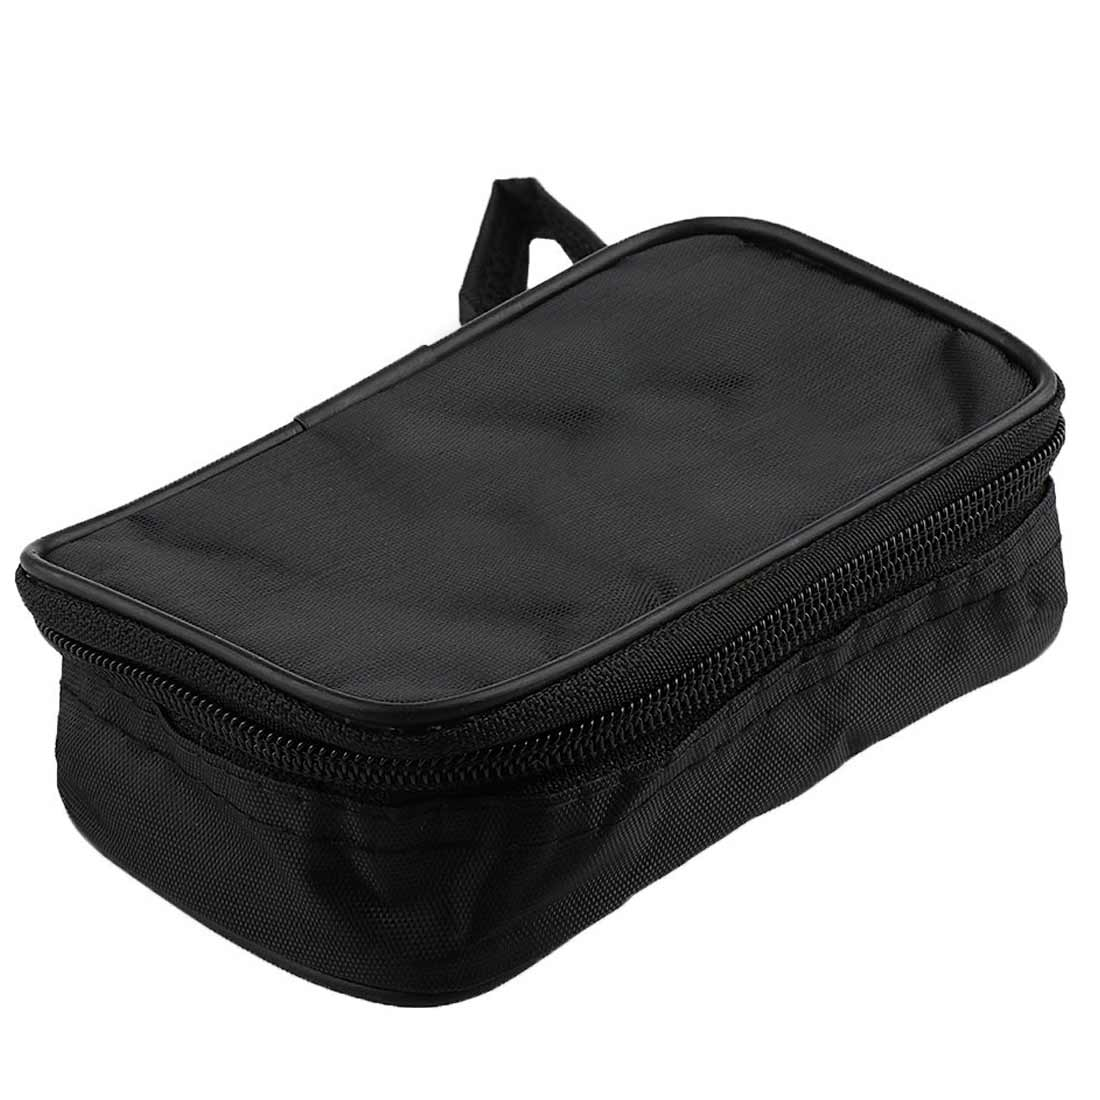 Waterproof Tools Bag Multimeter Black Canvas Bag For Series Digital Multimeter Cloth Durable 23*14*5cm